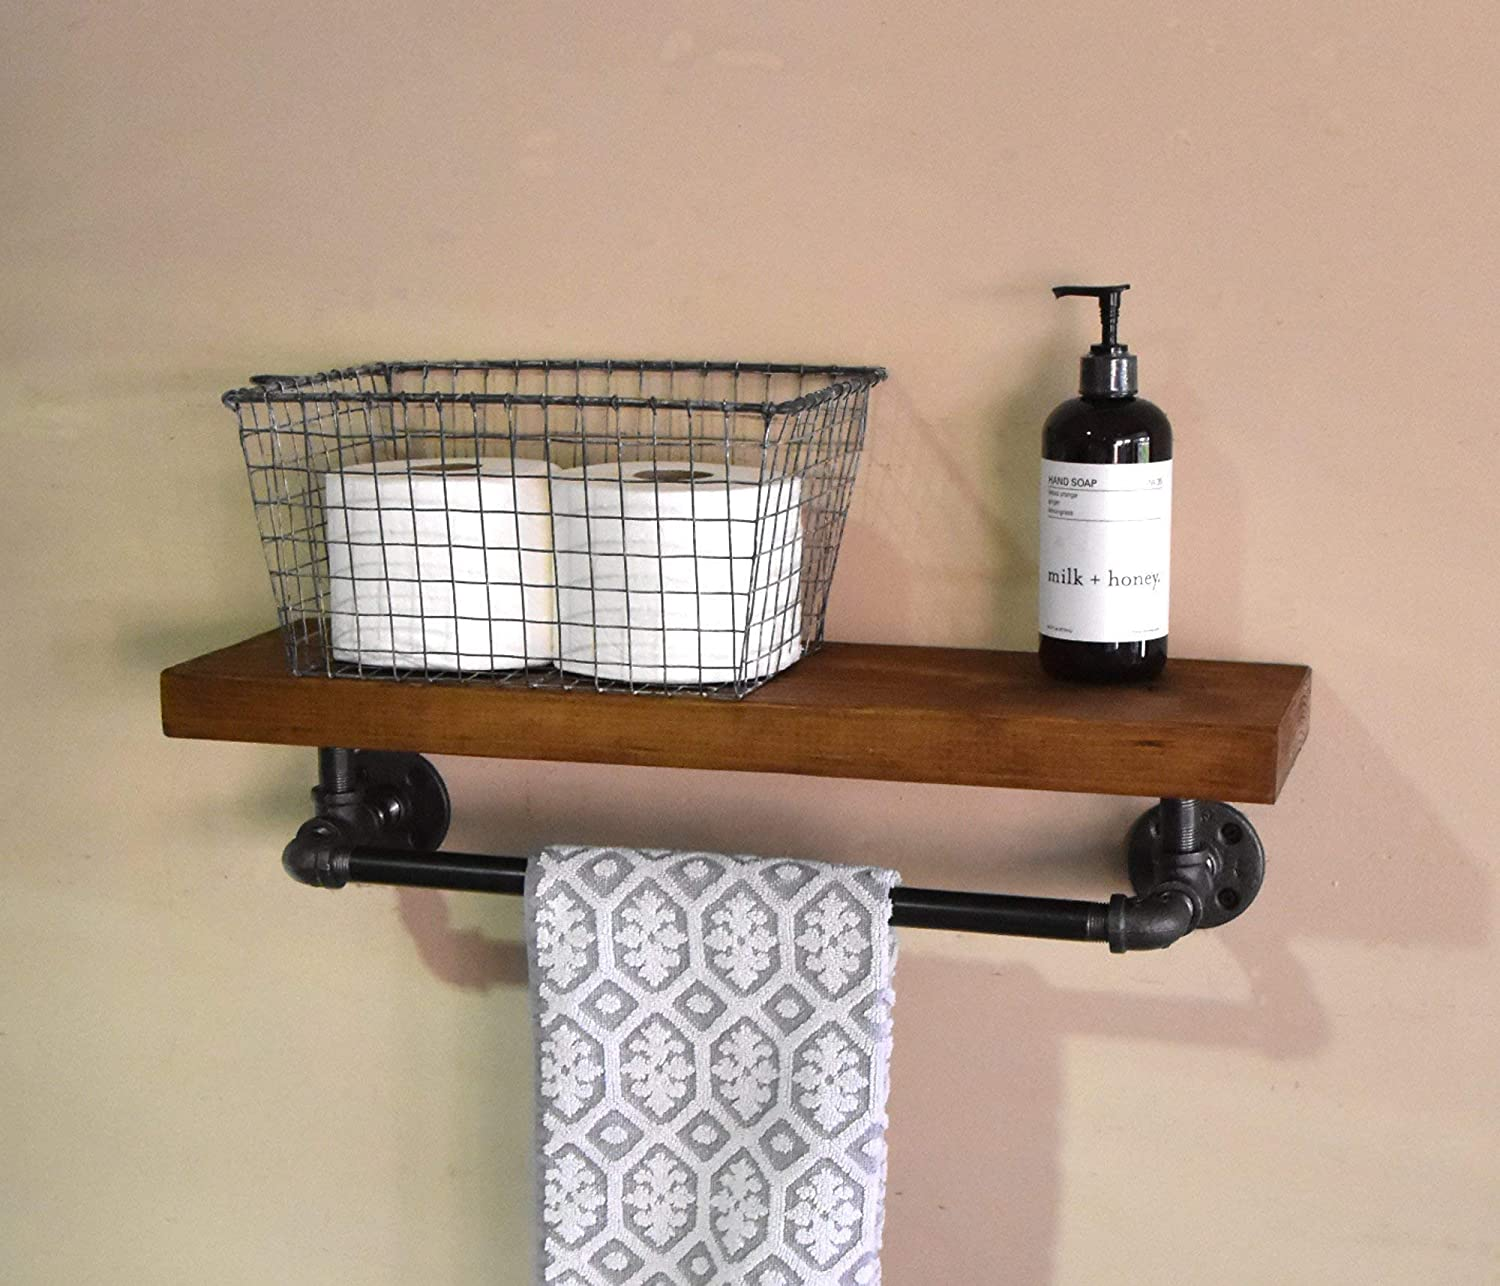 Bathroom Modern Towel and Soap Storage Farmhouse Open Shelving 24 Industrial Floating Rustic Farmhouse Shelf with 18 long Iron Pipe Towel Bar